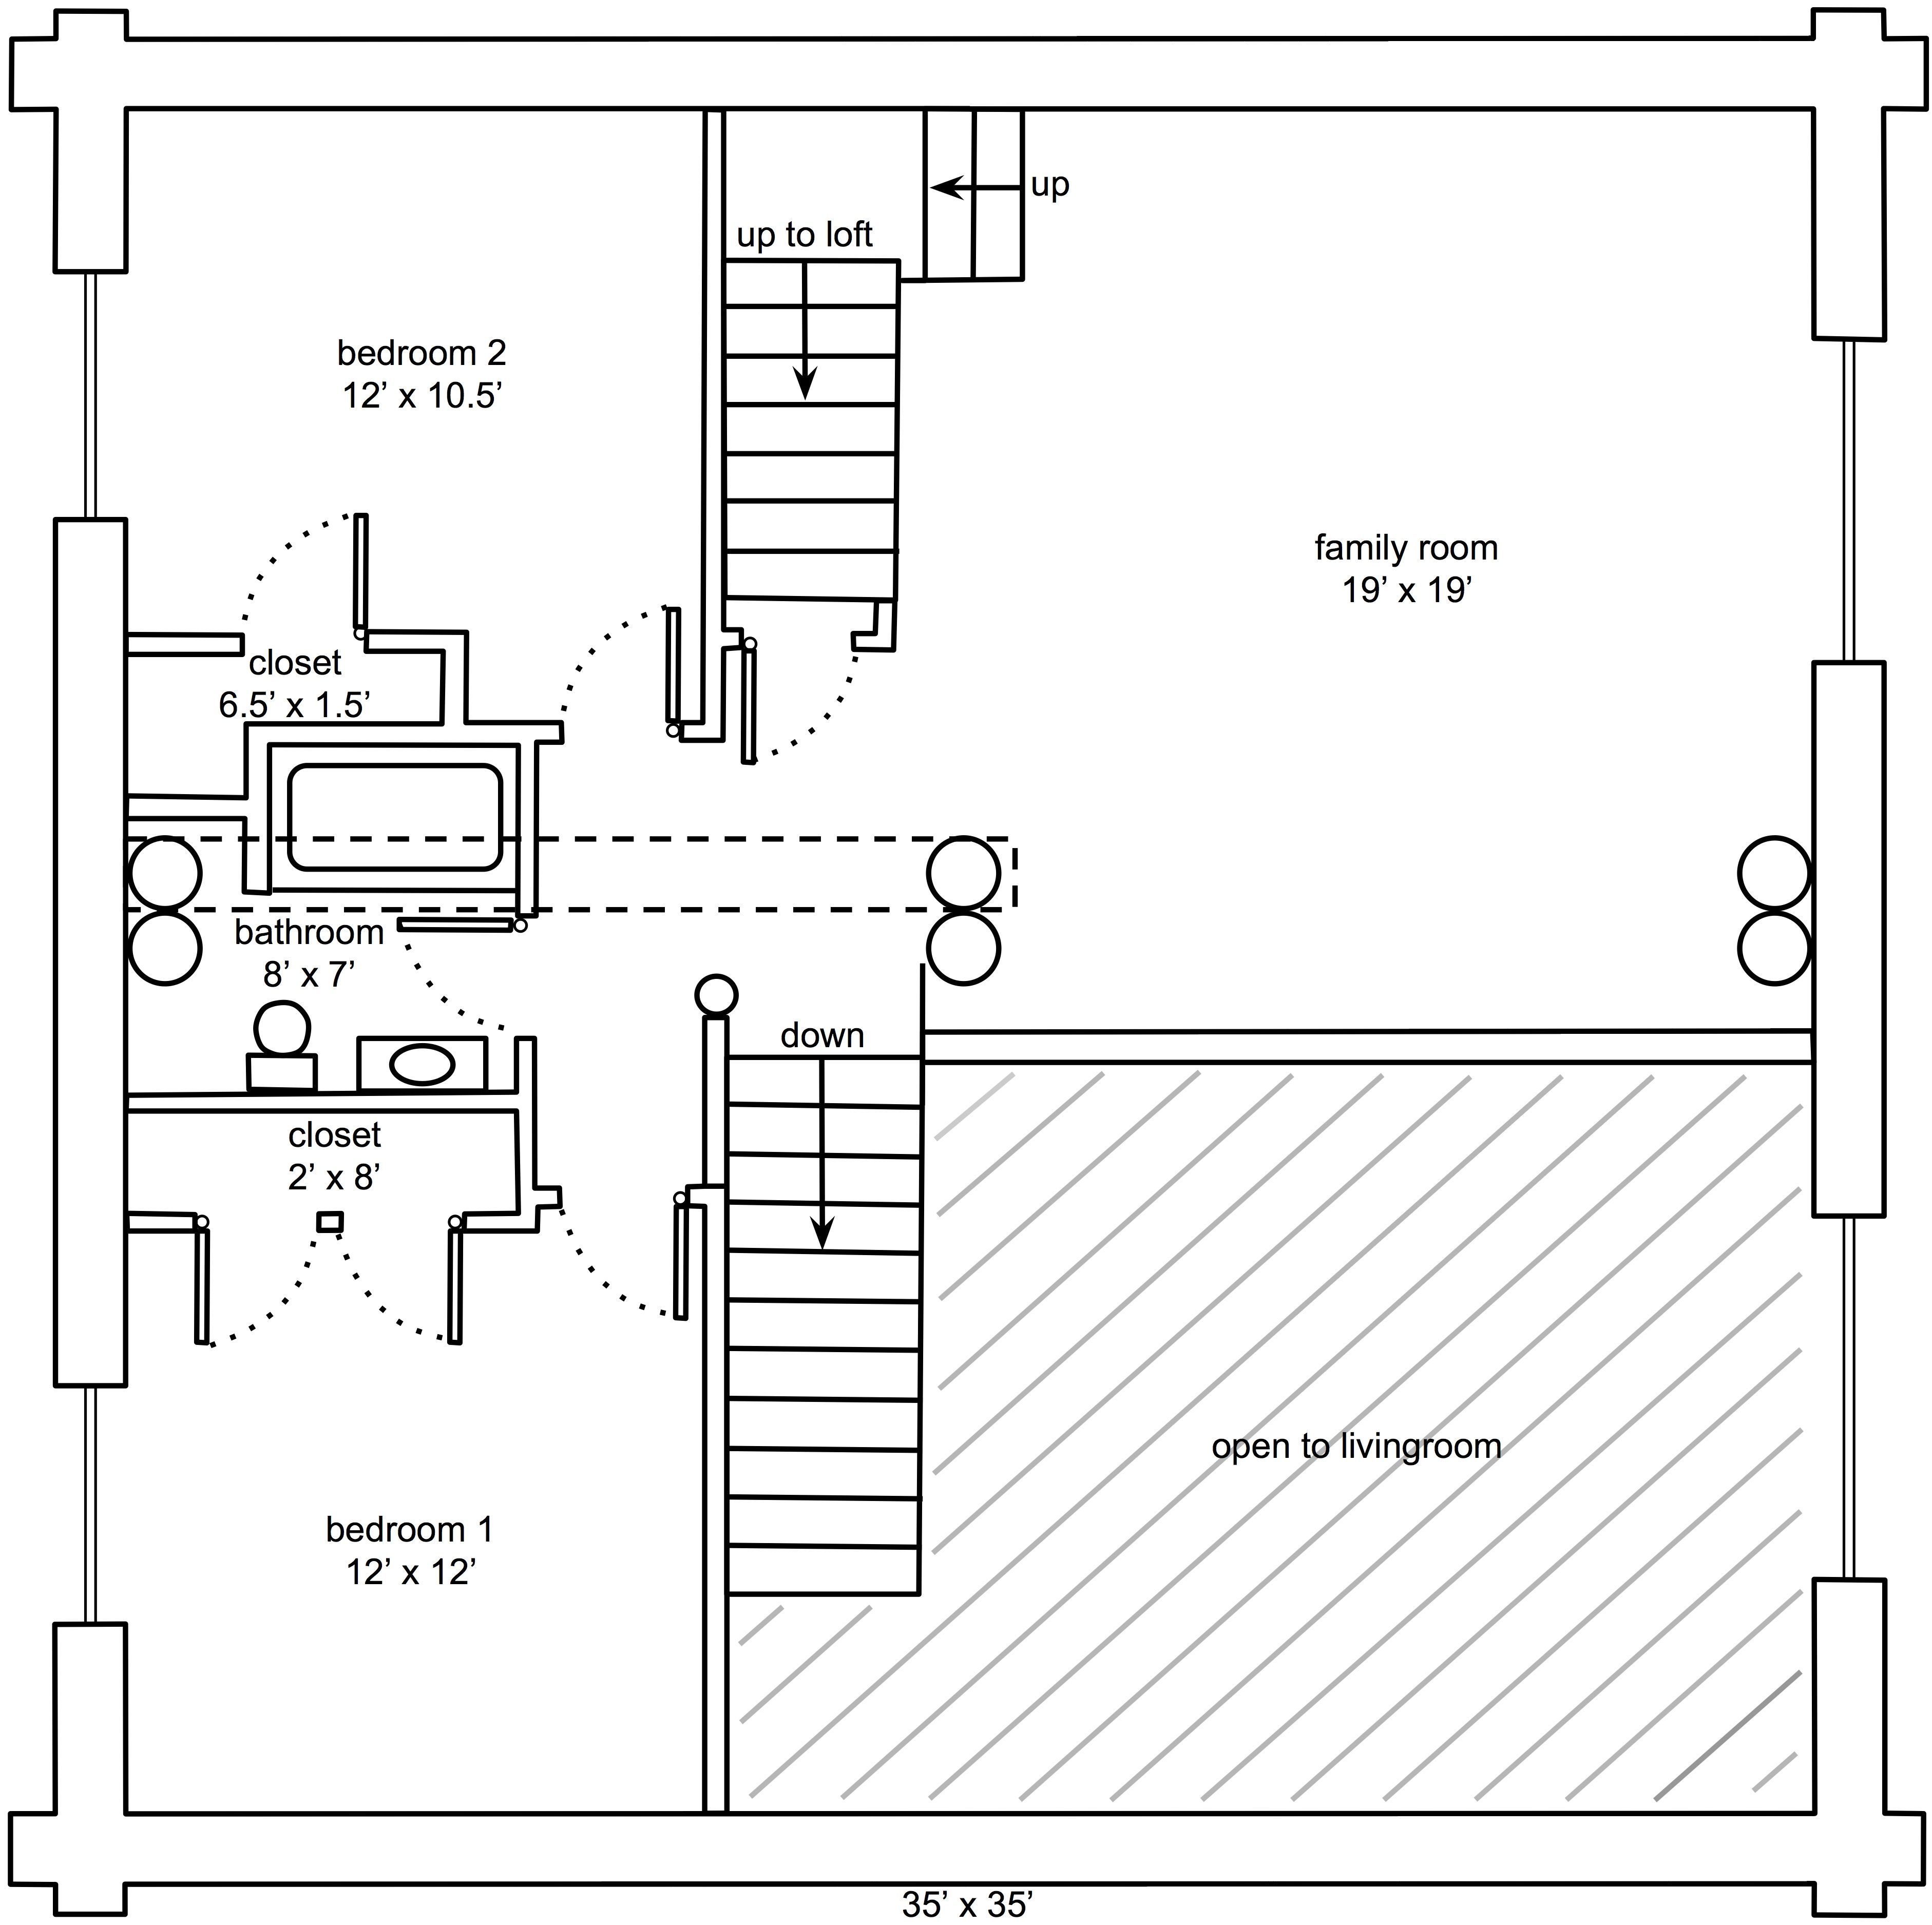 35 39 x 35 39 butt and pass log home floor plan upstairs by for Butt and pass log home